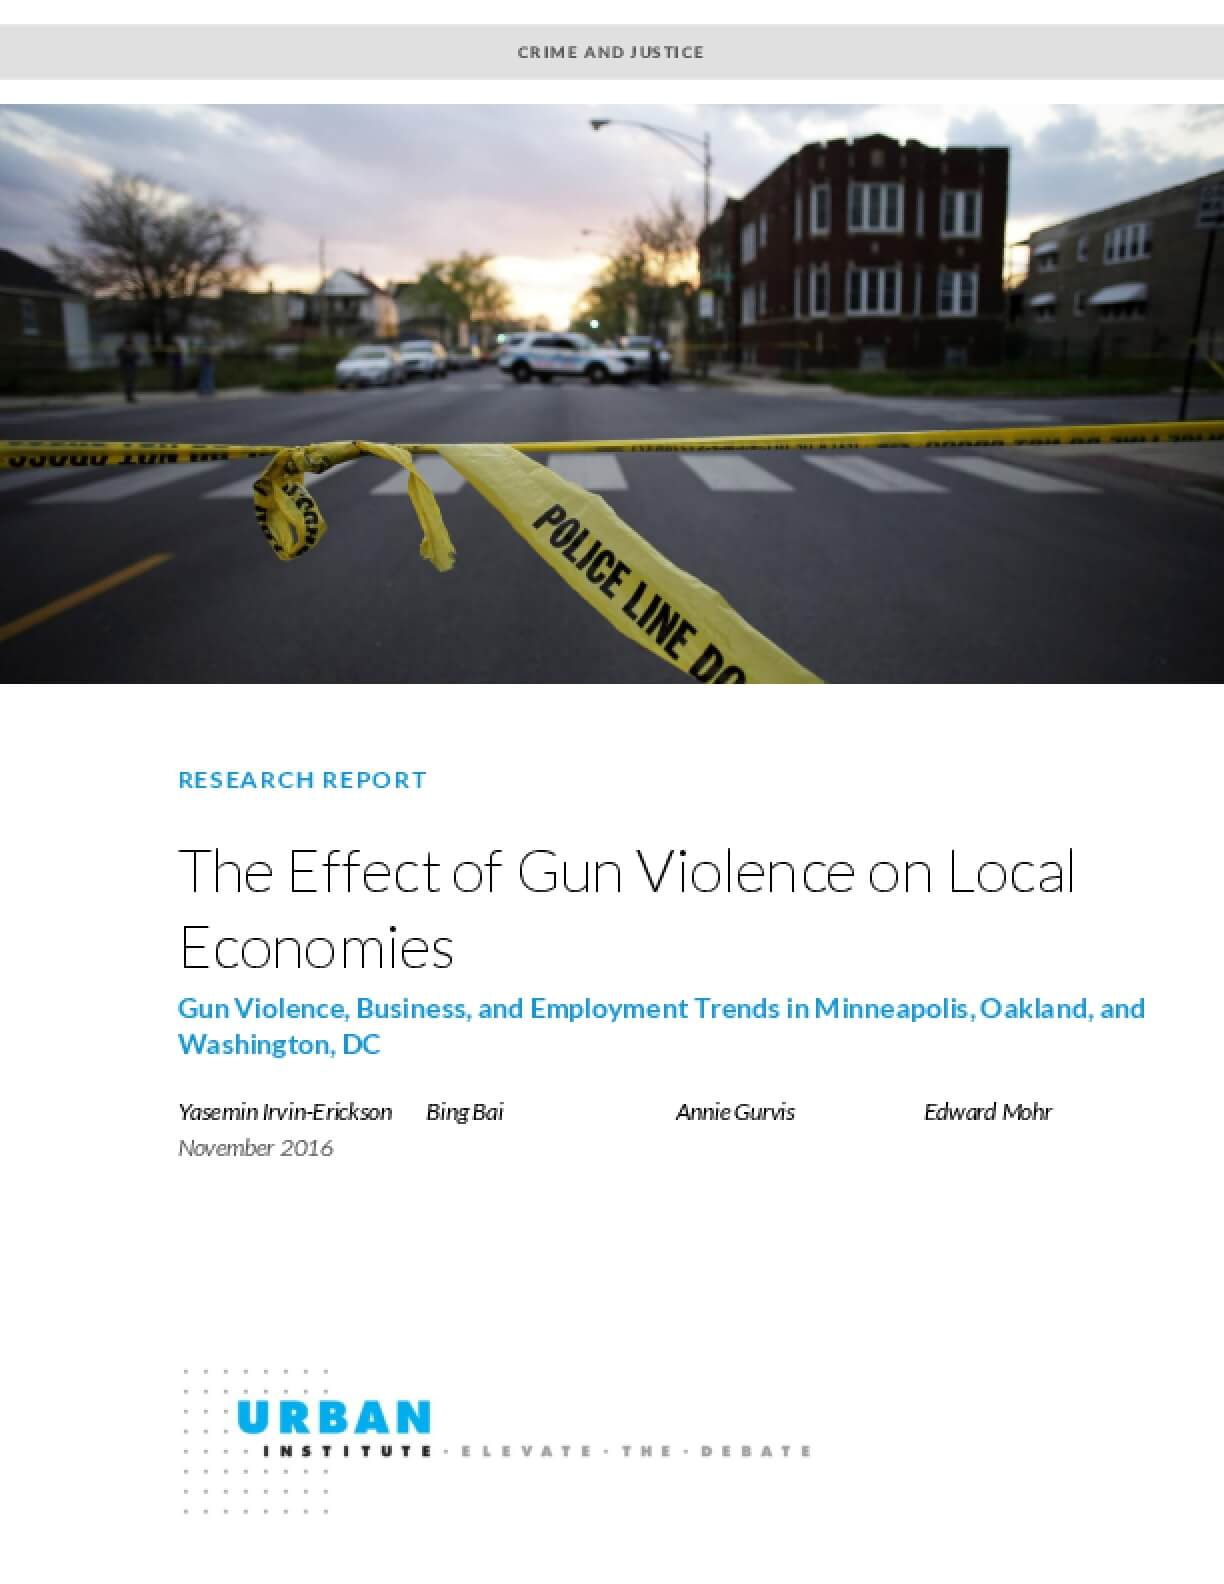 The Effect of Gun Violence on Local Economies